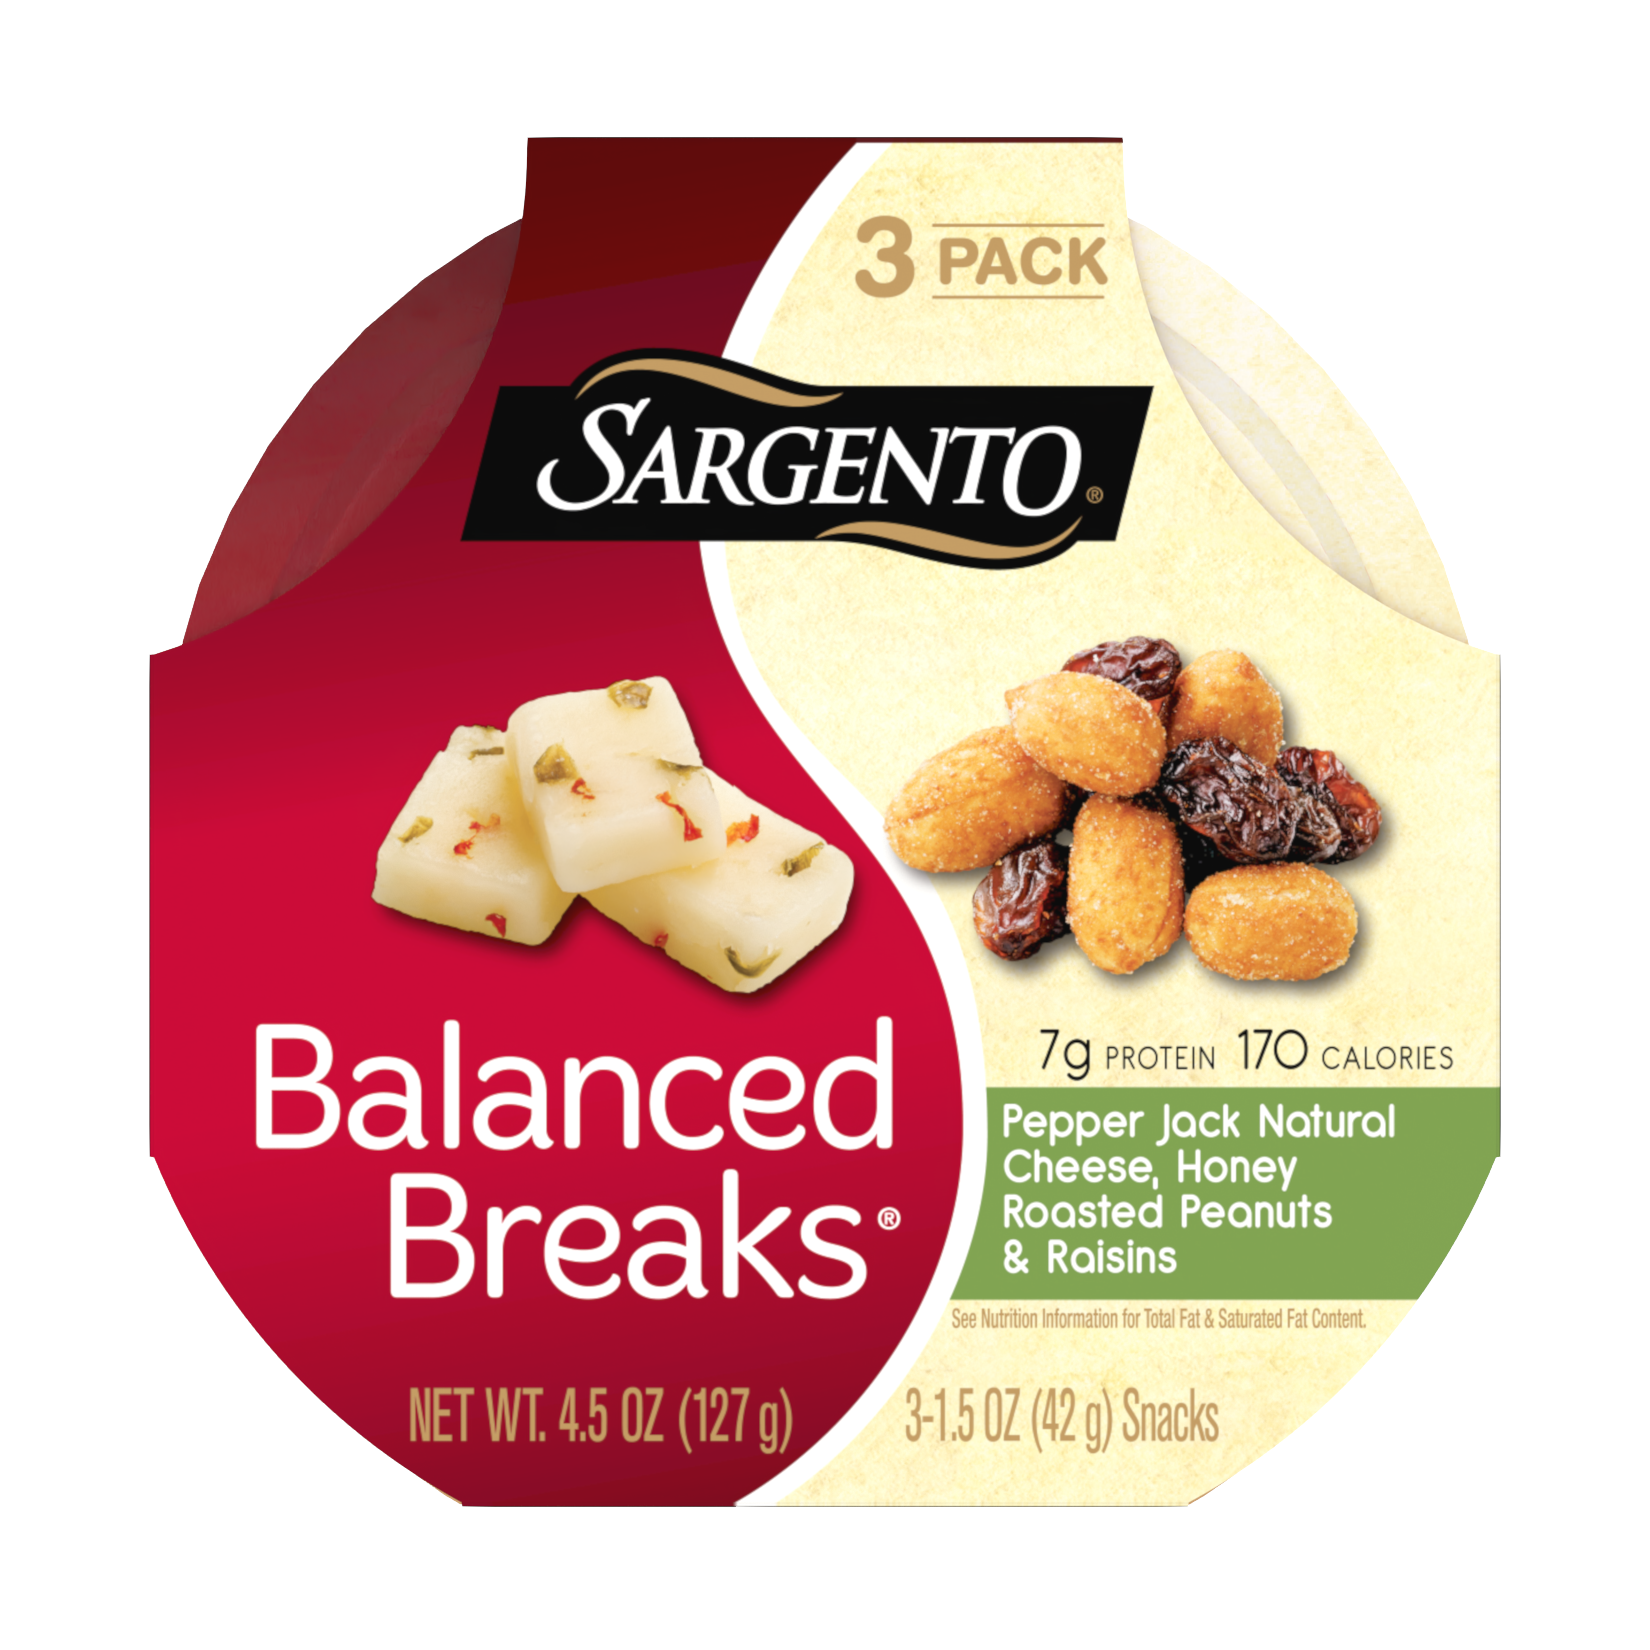 Sargento® Balanced Breaks®, Pepper Jack Natural Cheese, Honey Roasted Peanuts and Raisins